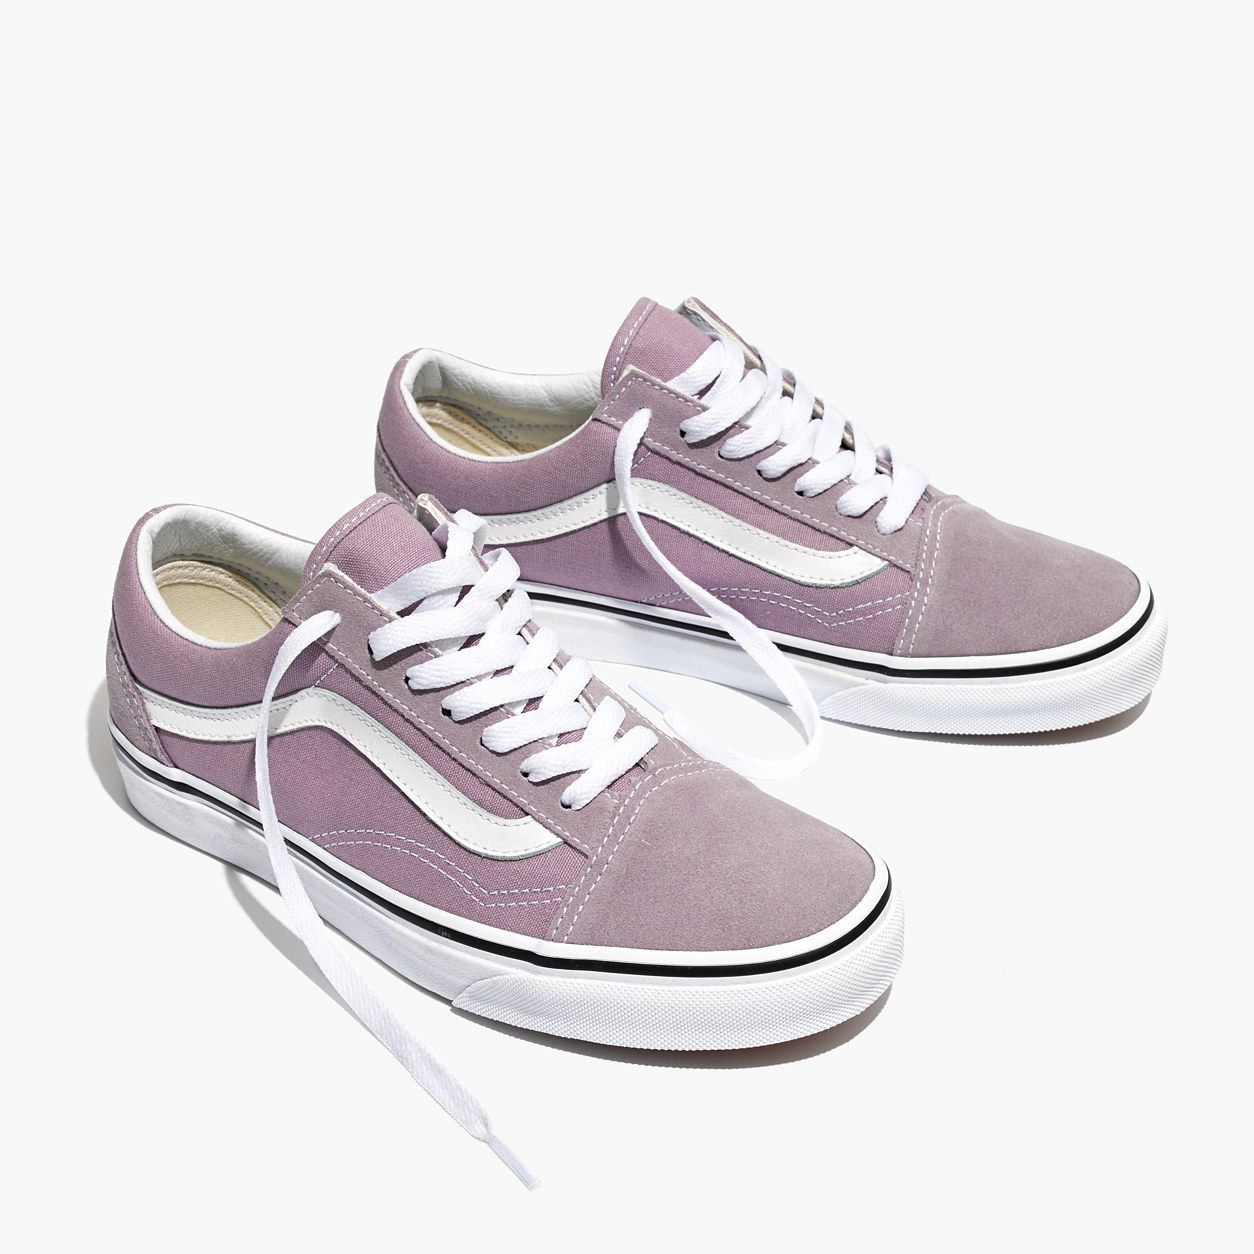 b2fb69d3081f52 Madewell Womens Vans Unisex Old Skool Lace-Up Sneakers In Sea Fog ...